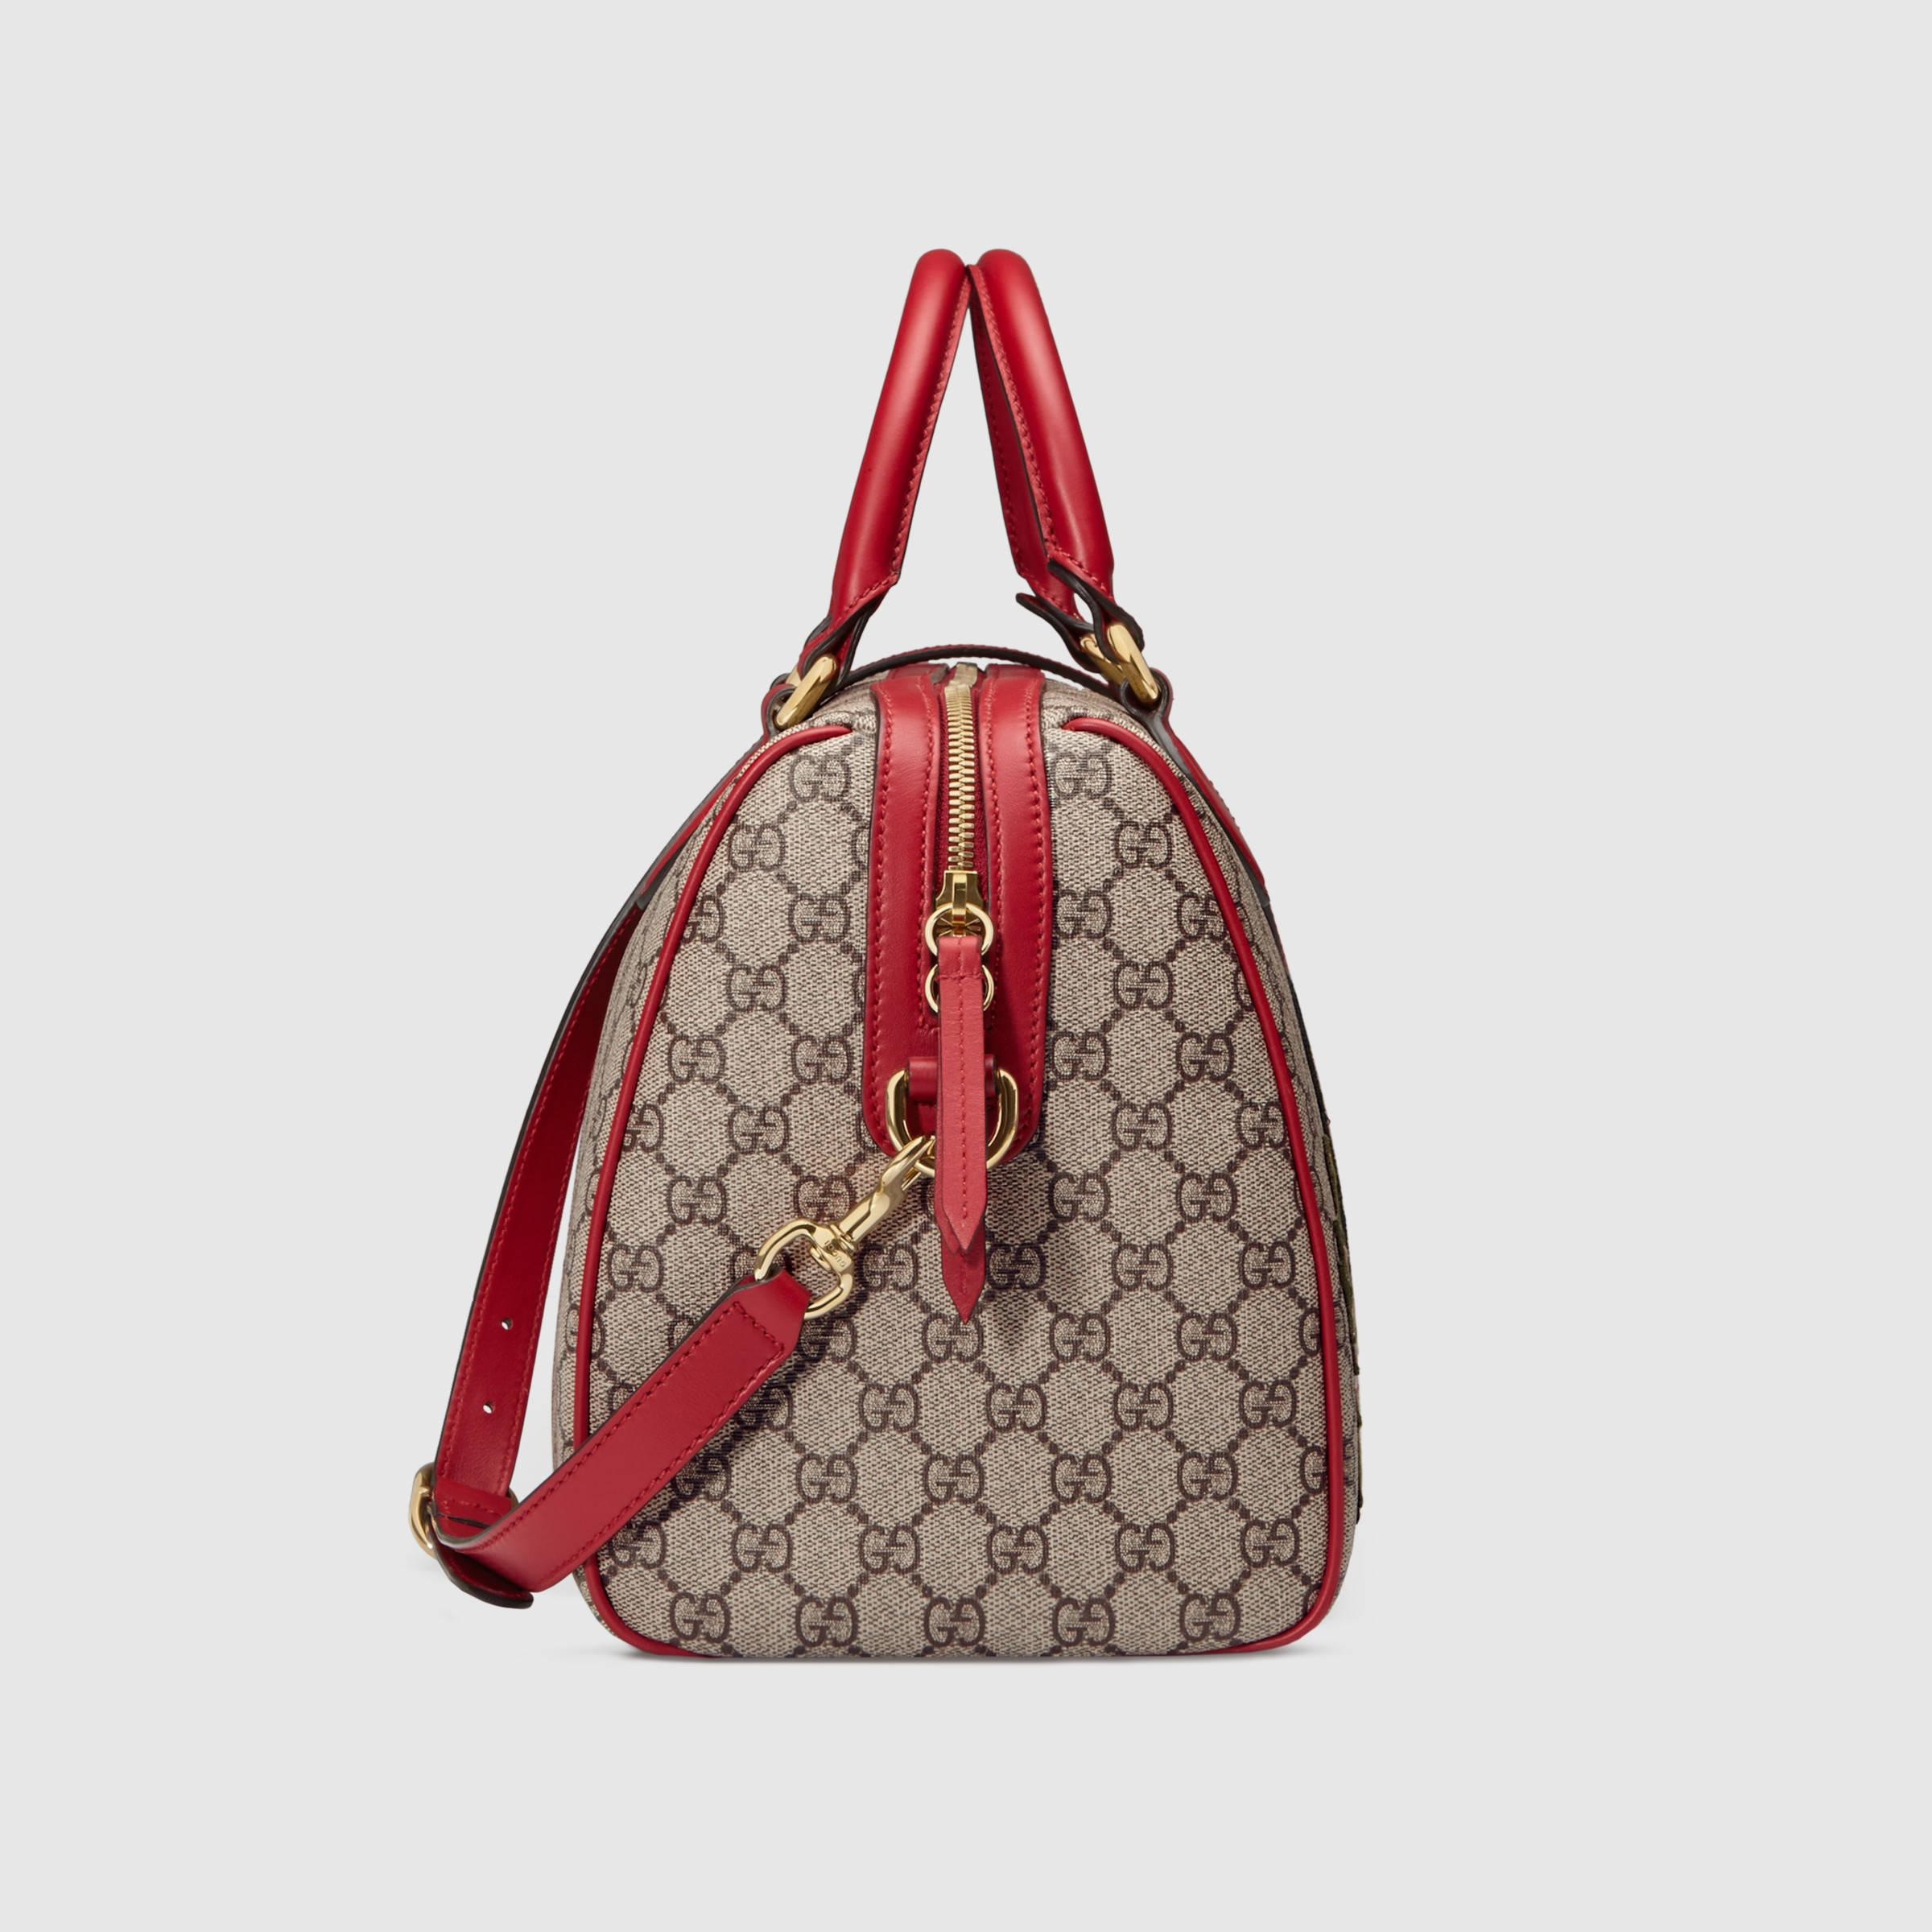 9b5b4eeb7e5f63 Gucci Limited Edition Gg Supreme Top Handle Bag With Embroideries | Lyst